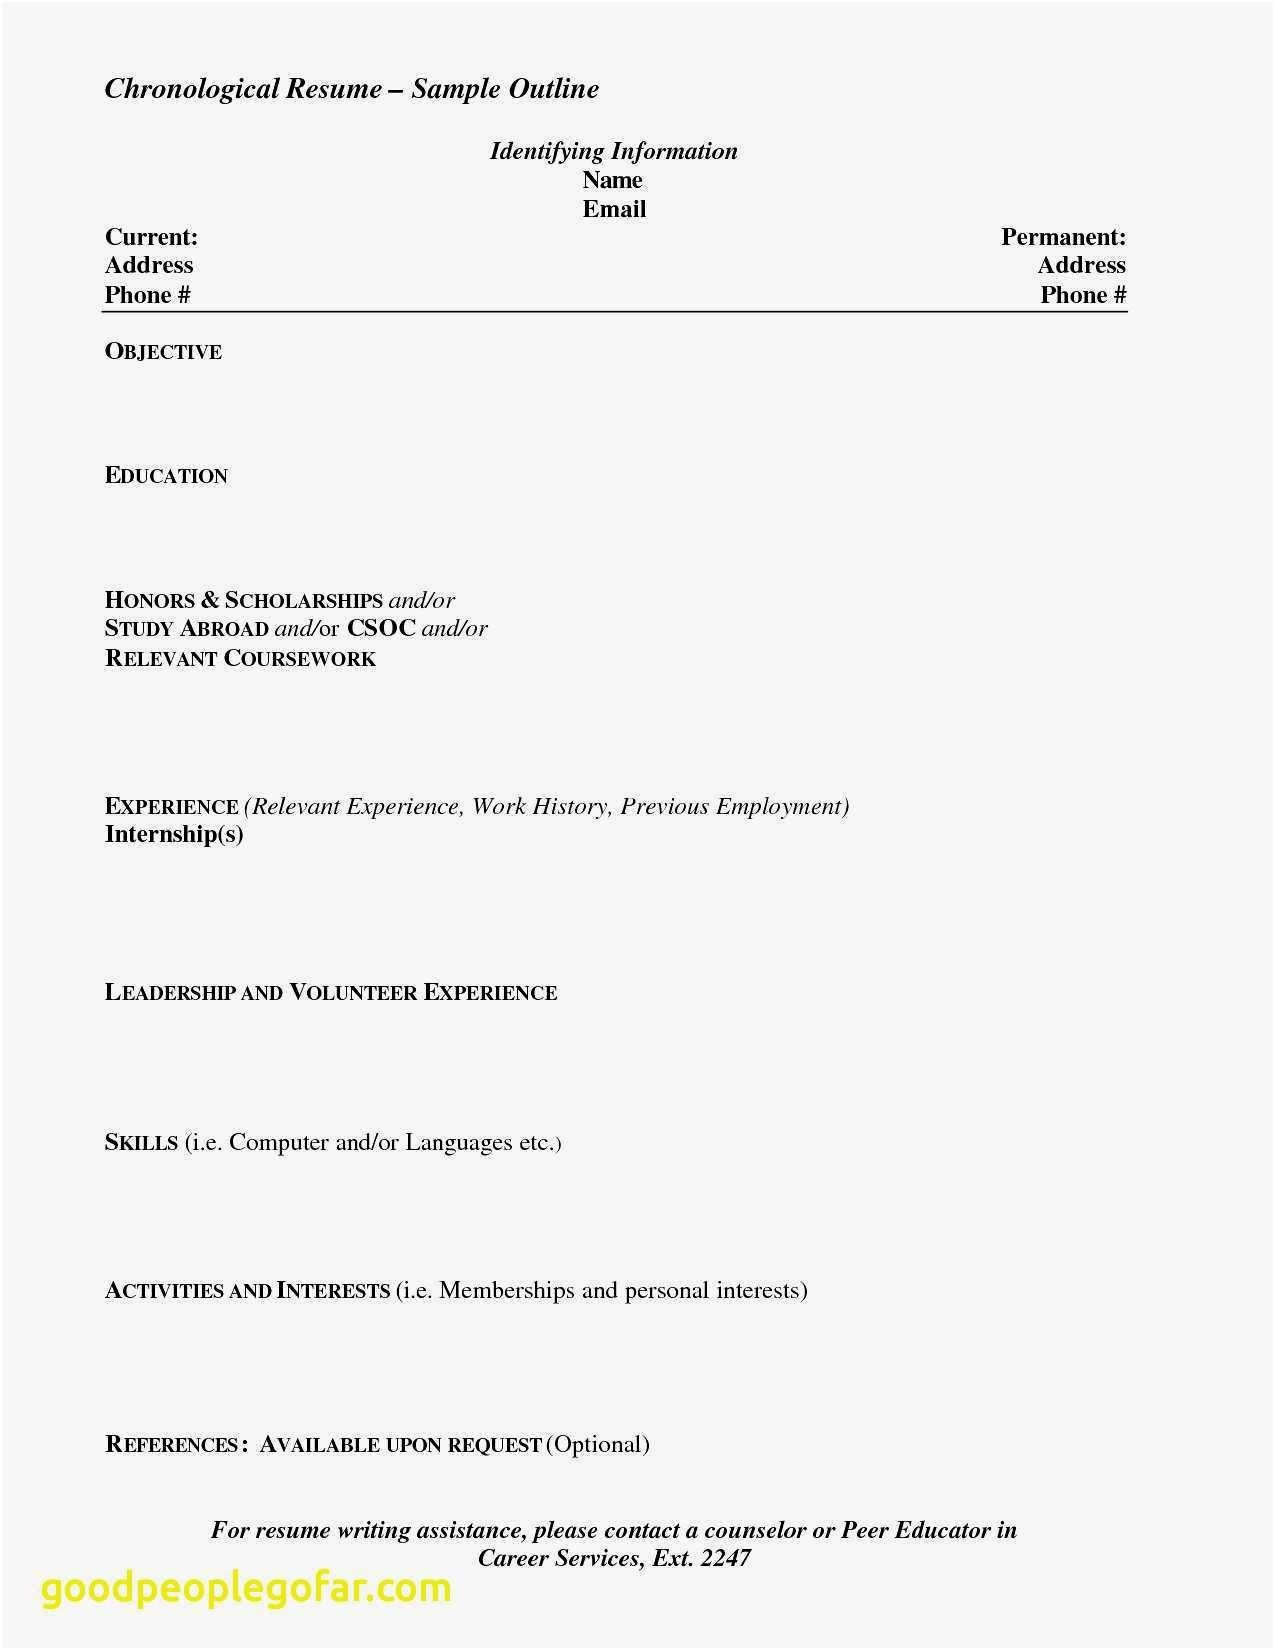 Resumes for Recent High School Graduates - Sample Resume for Recent High School Graduate Reference Unique